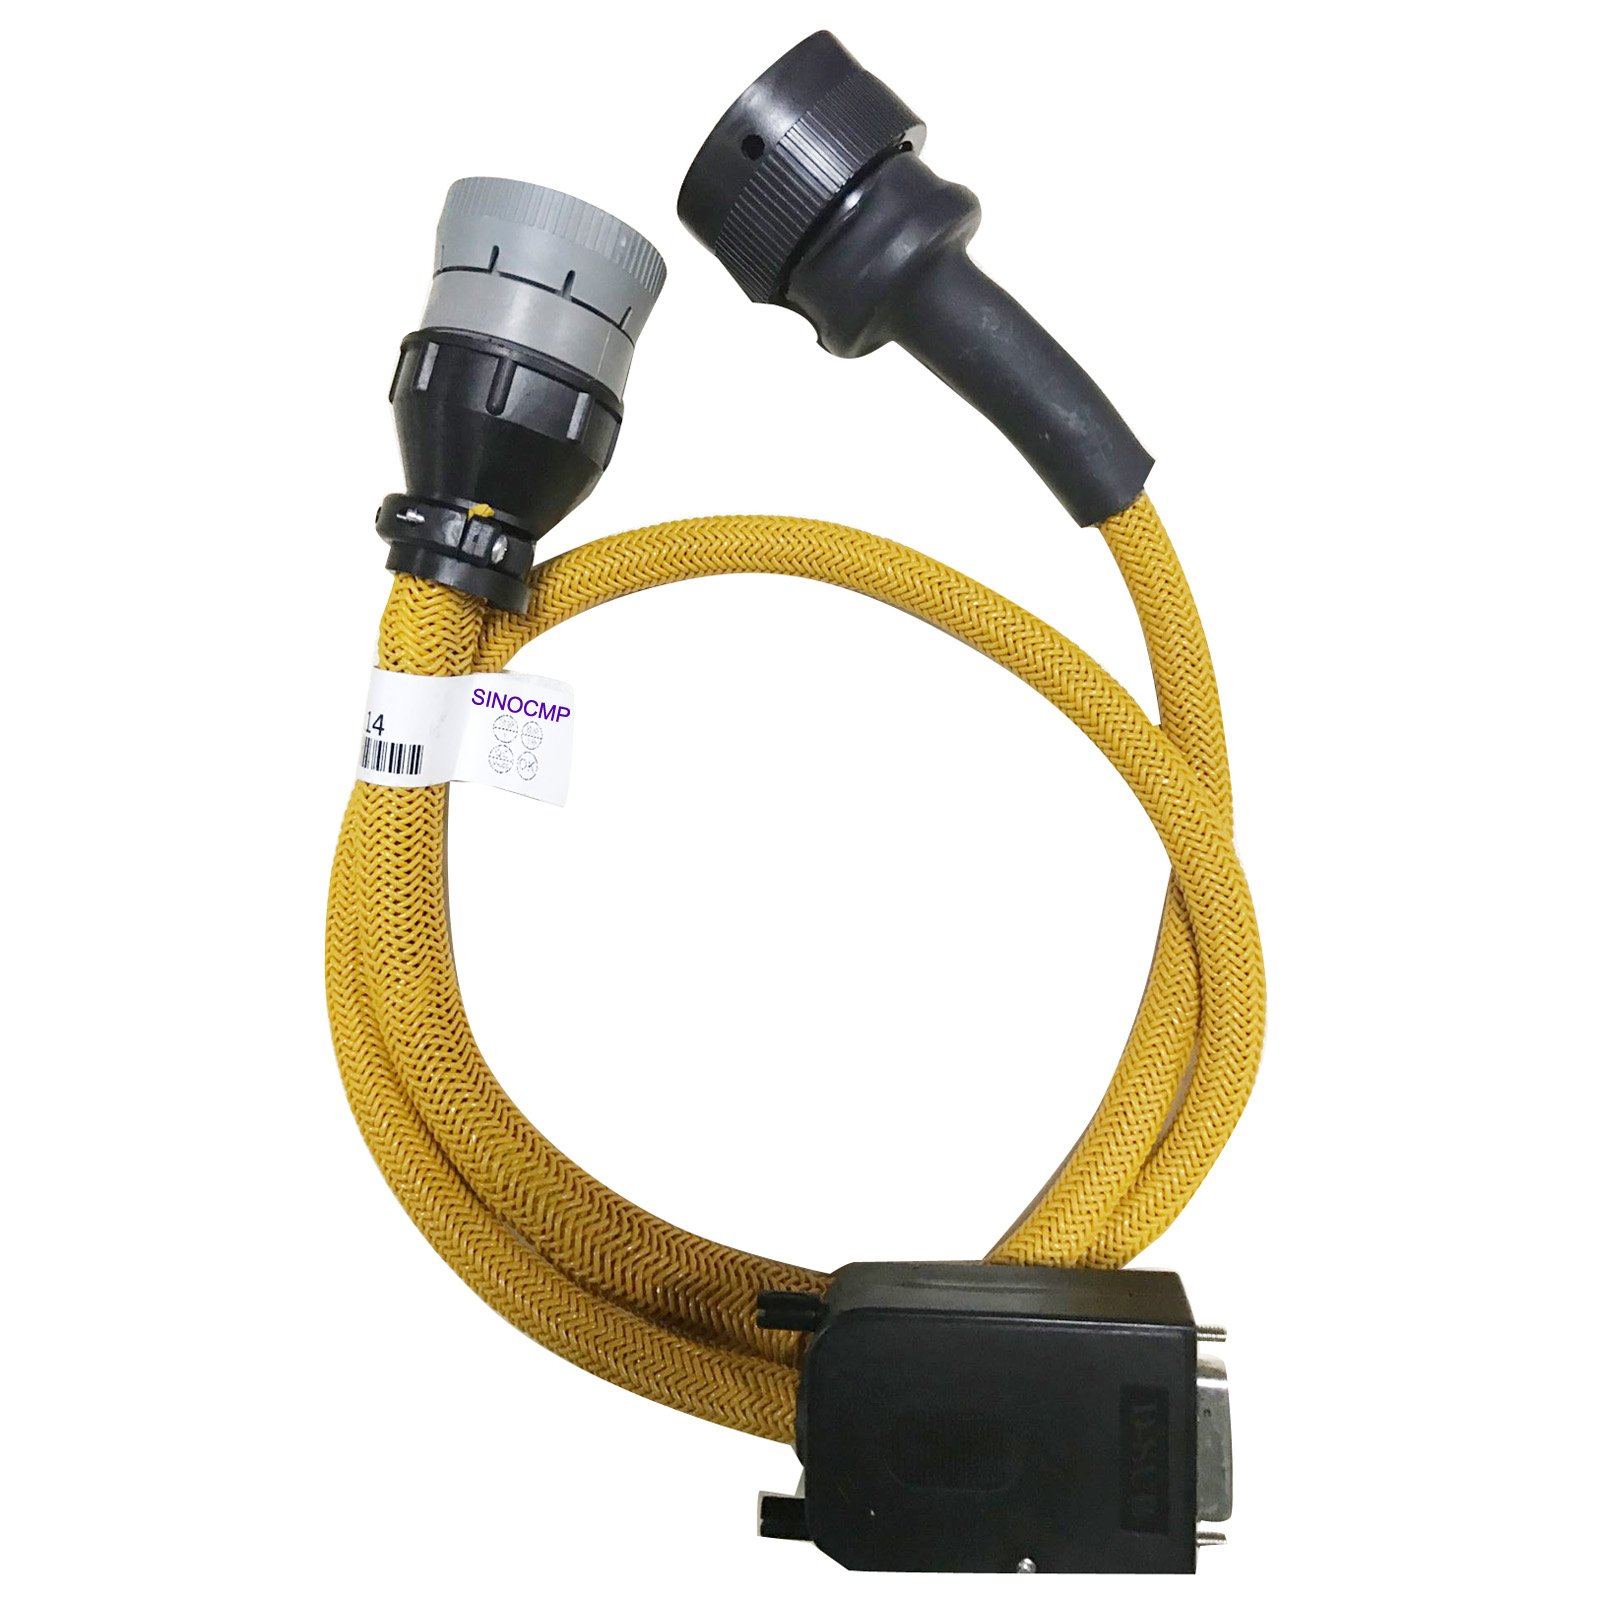 14 Pins Connector Cable - SINOCMP Cable for Cat Caterpillar ET 3 Aftermarkets Parts, 3 Month Warranty by SINOCMP